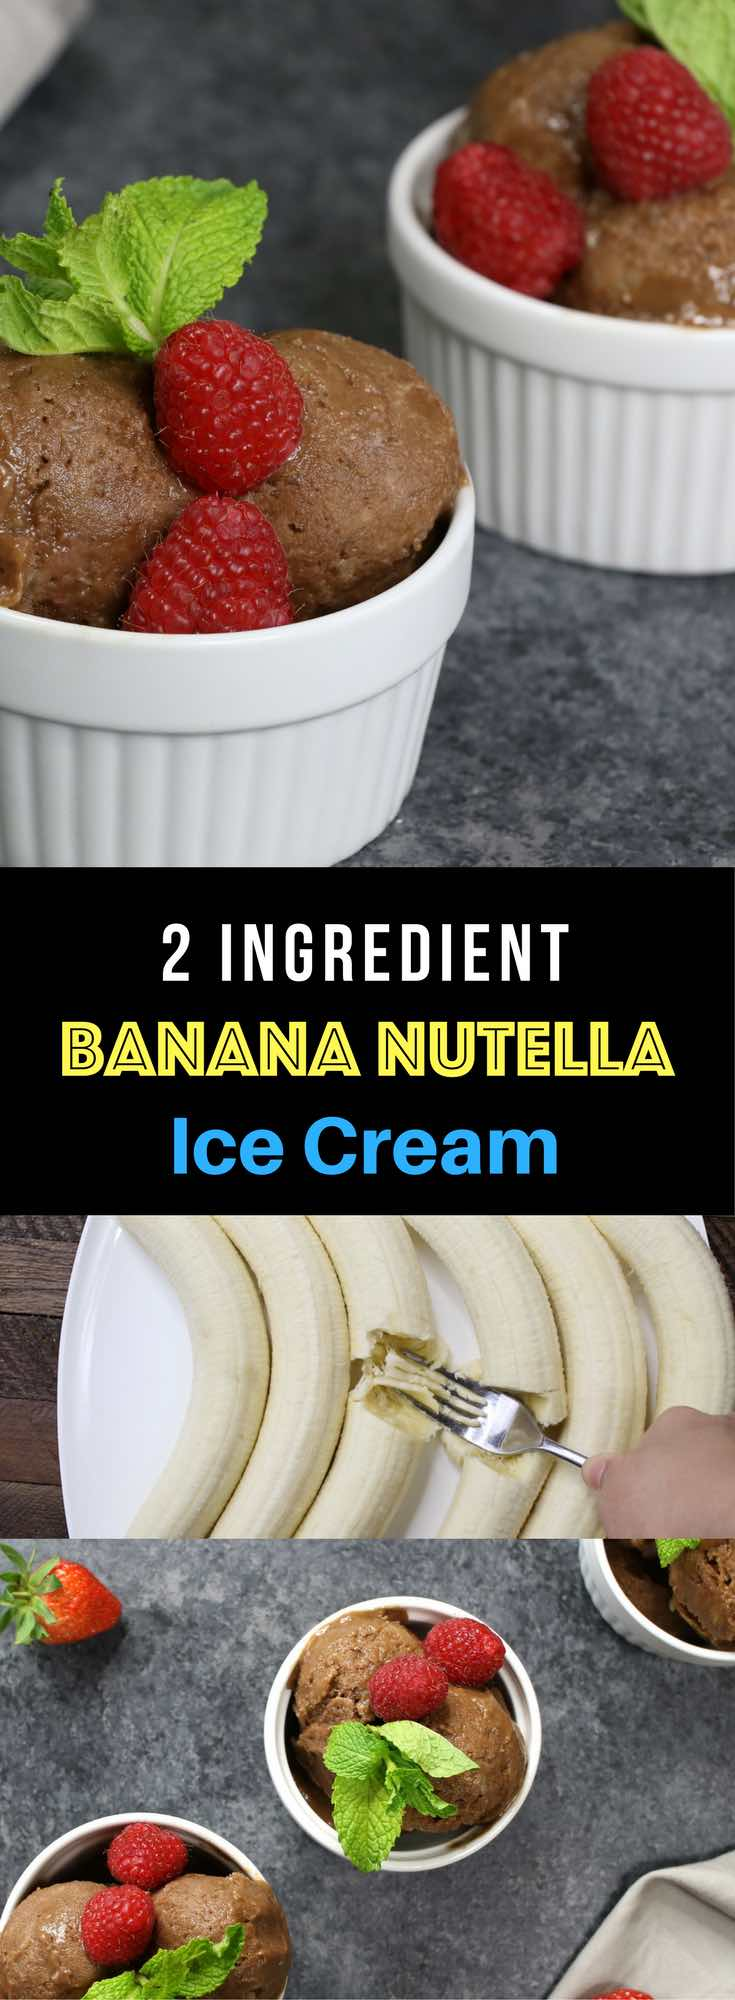 Nutella and Banana Ice Cream – creamy and refreshing, this 2-ingredient recipe is no churn and is easy to make. No added sugar.